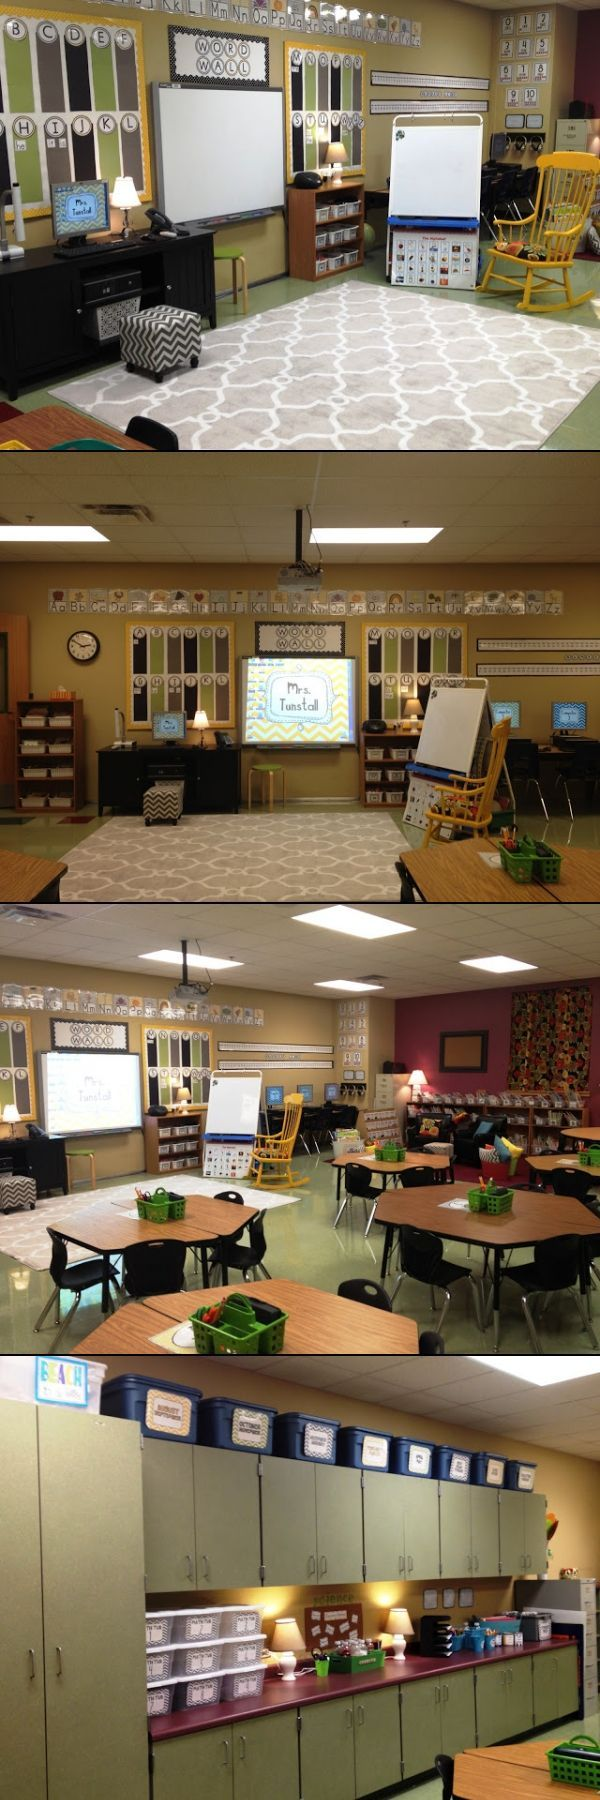 A warm, cozy classroom that looks like home. LOVE IT!